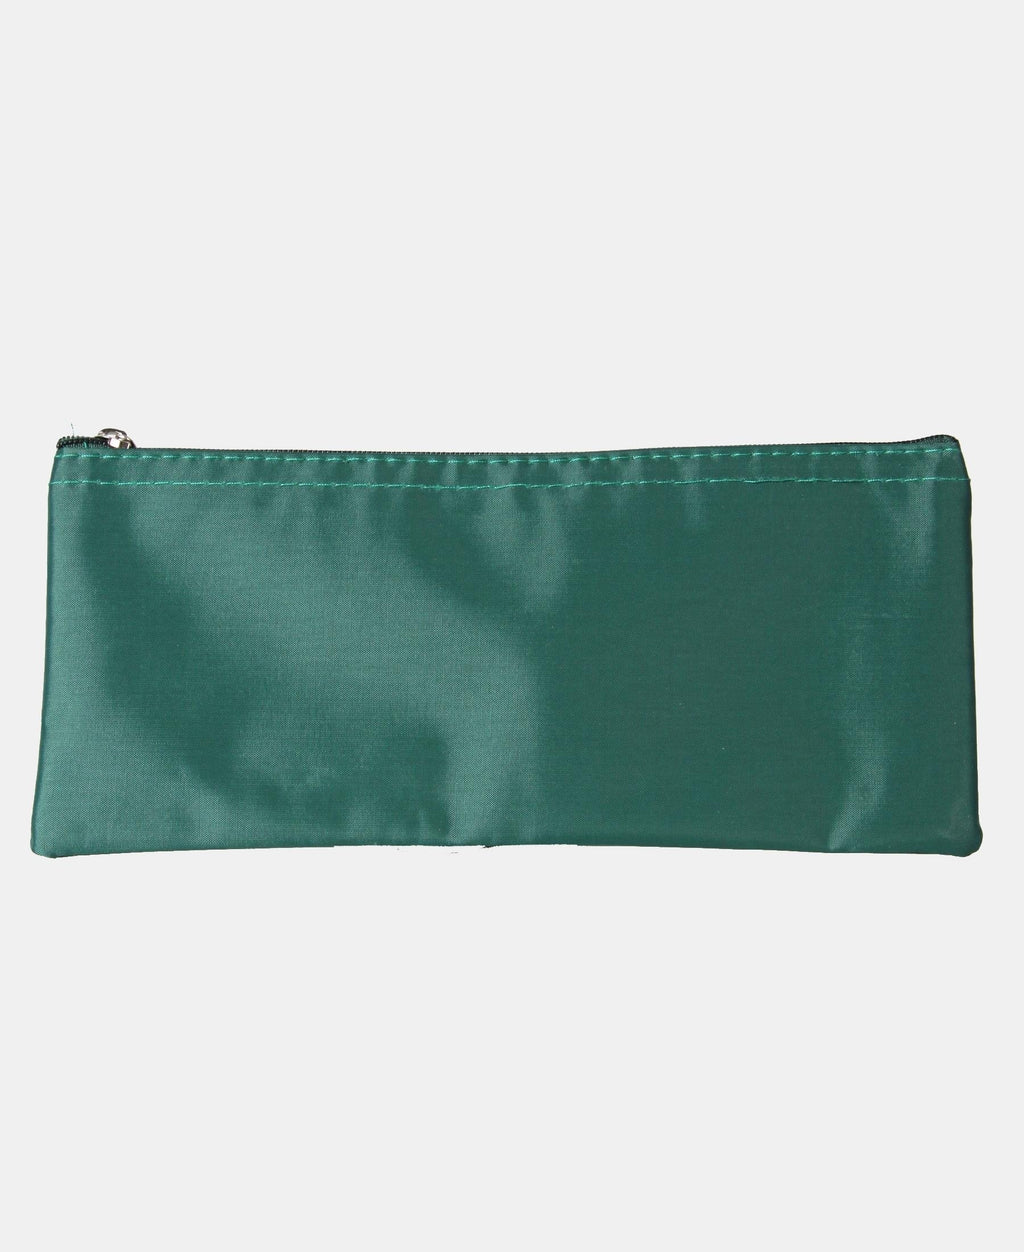 Econo 22Cm Nylon Pencil Case - Green